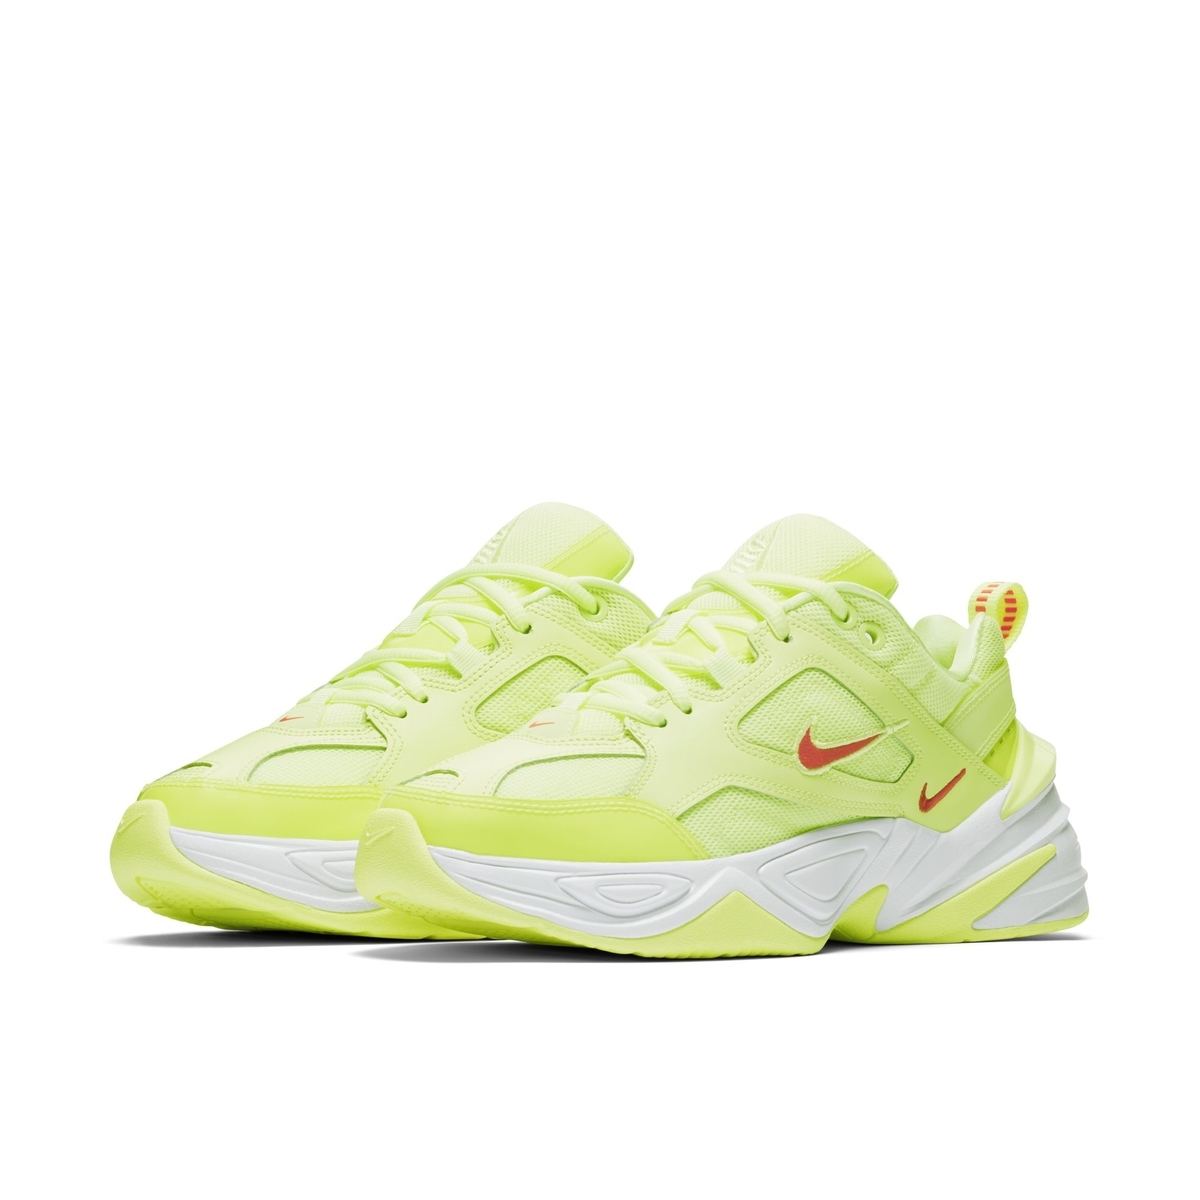 NIKE M2K TEKNO BARELY VOLT:WHITE:RED ORBIT 1